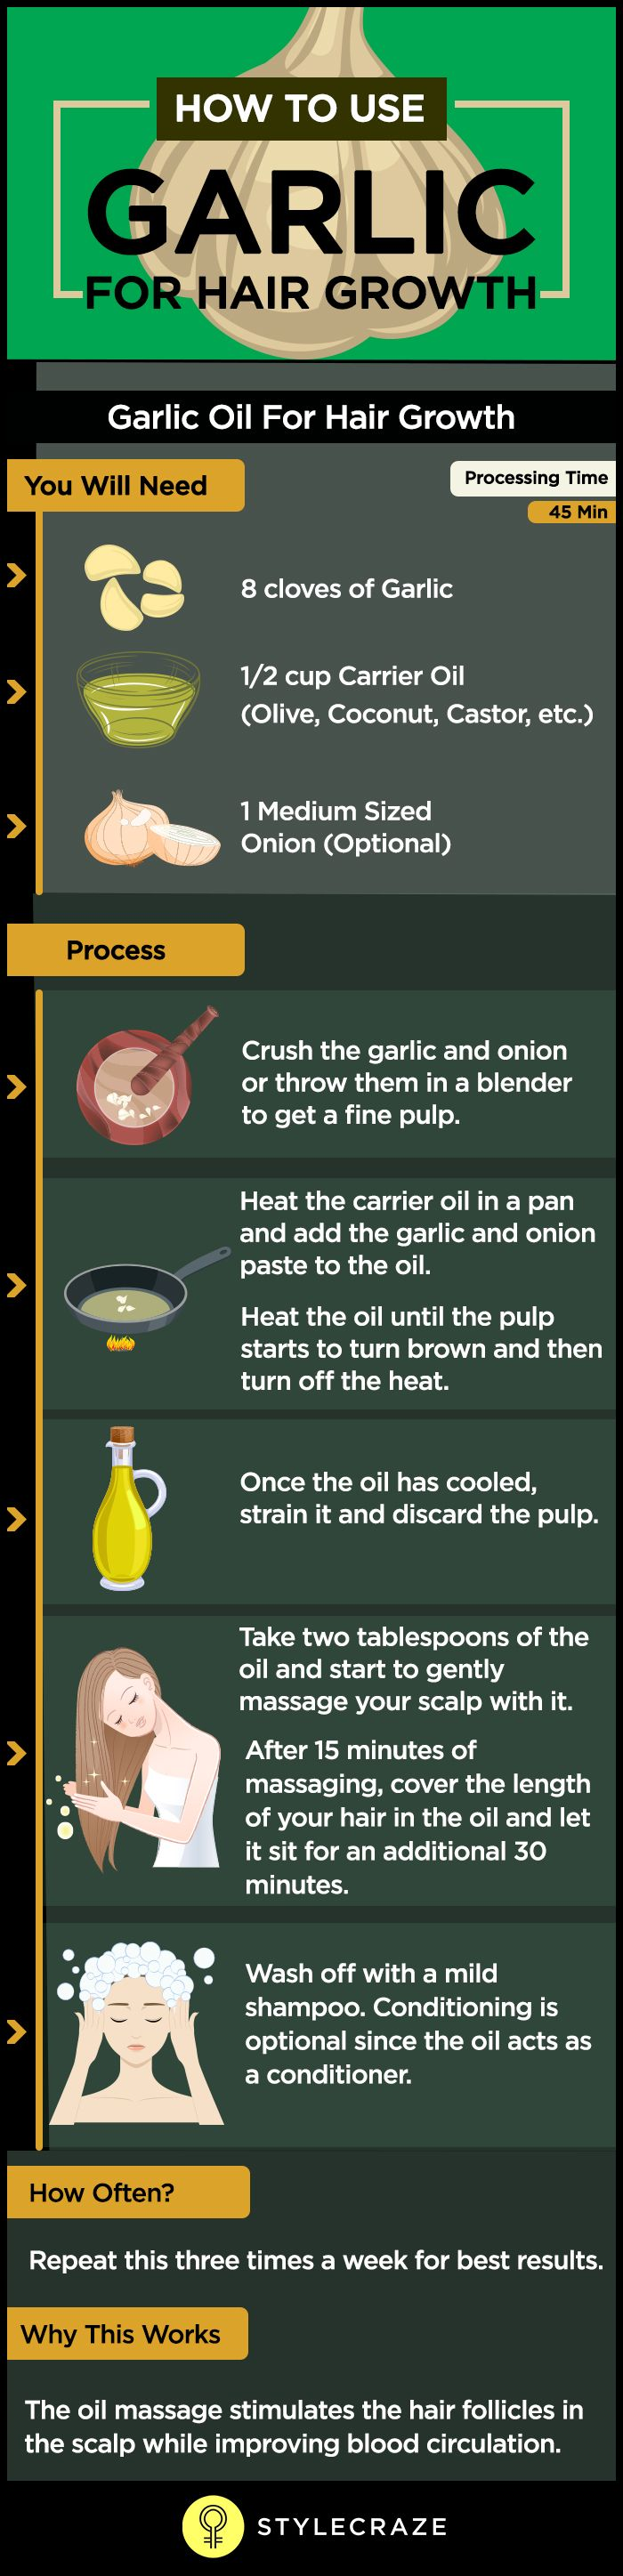 Who doesn't love the smell of freshly sauteed garlic? Even if you don't, you should know that the ingredient is good for more than just garnish. To be more specific, it can be used to improve hair growth. In a time where people are spending more and more money on salon treatments and extensions, this natural ingredient has become a vastly underrated hair growth aid.